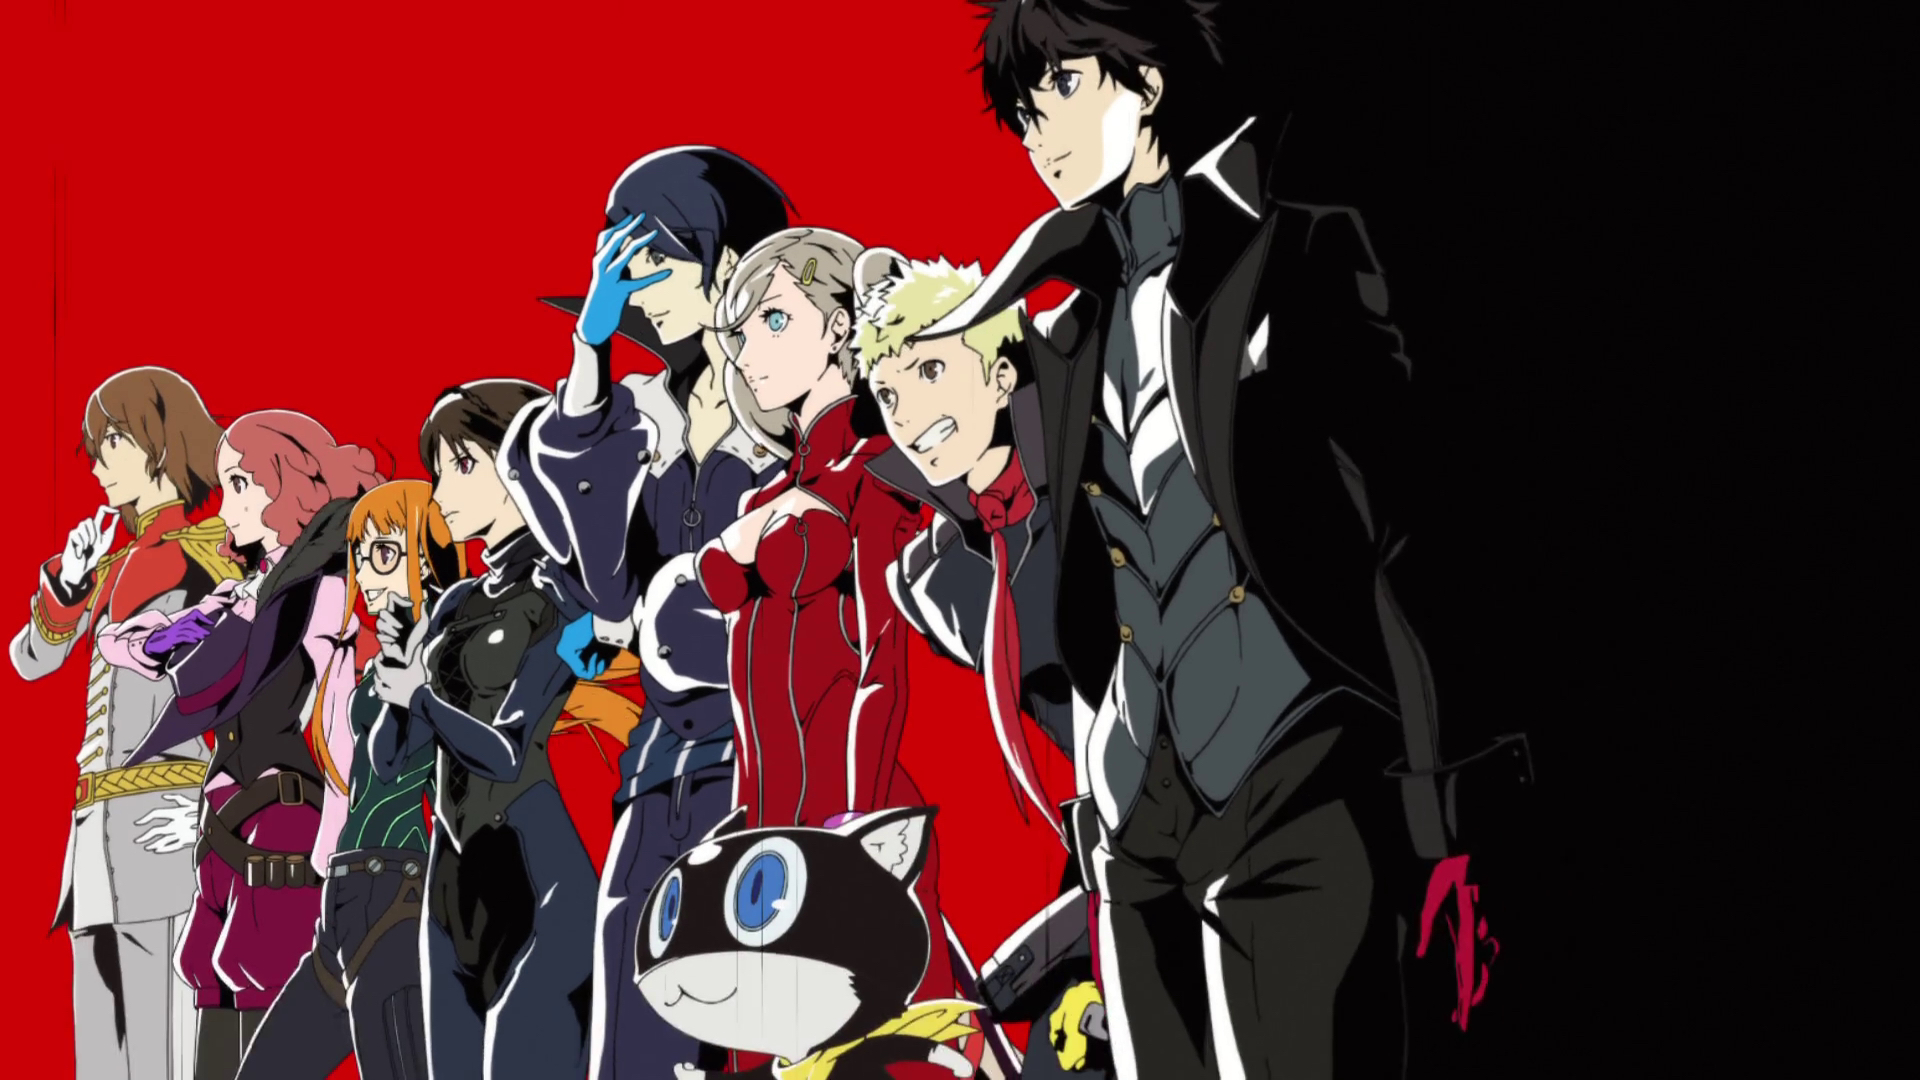 Persona 5 Can Run at 4K and 60 FPS But Only On PC